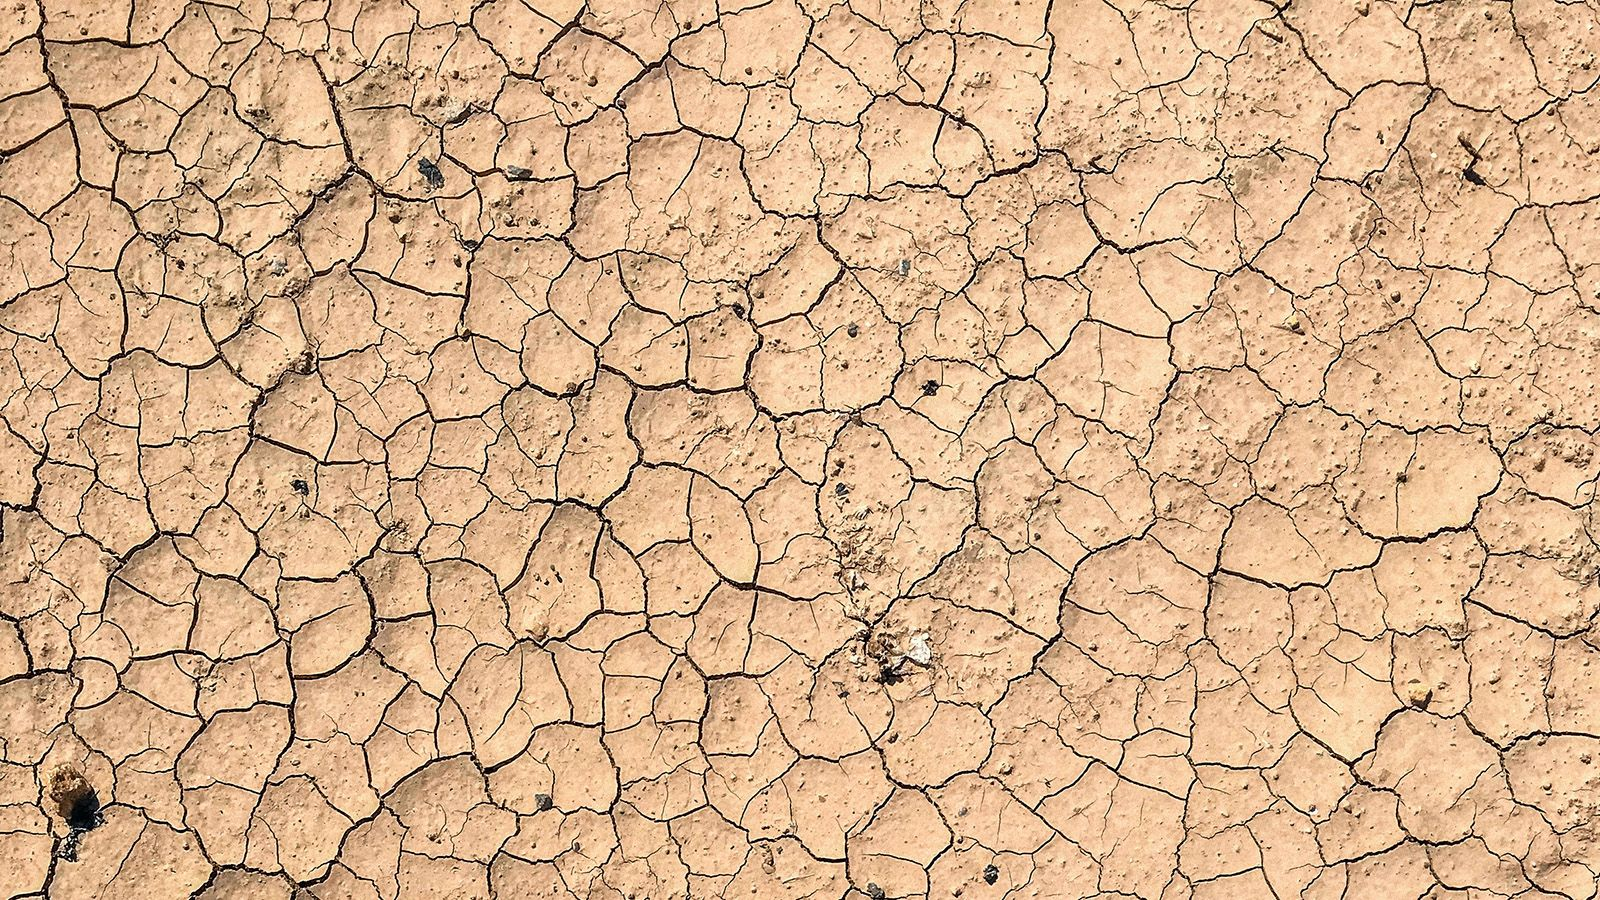 Dry cracked earth banner image